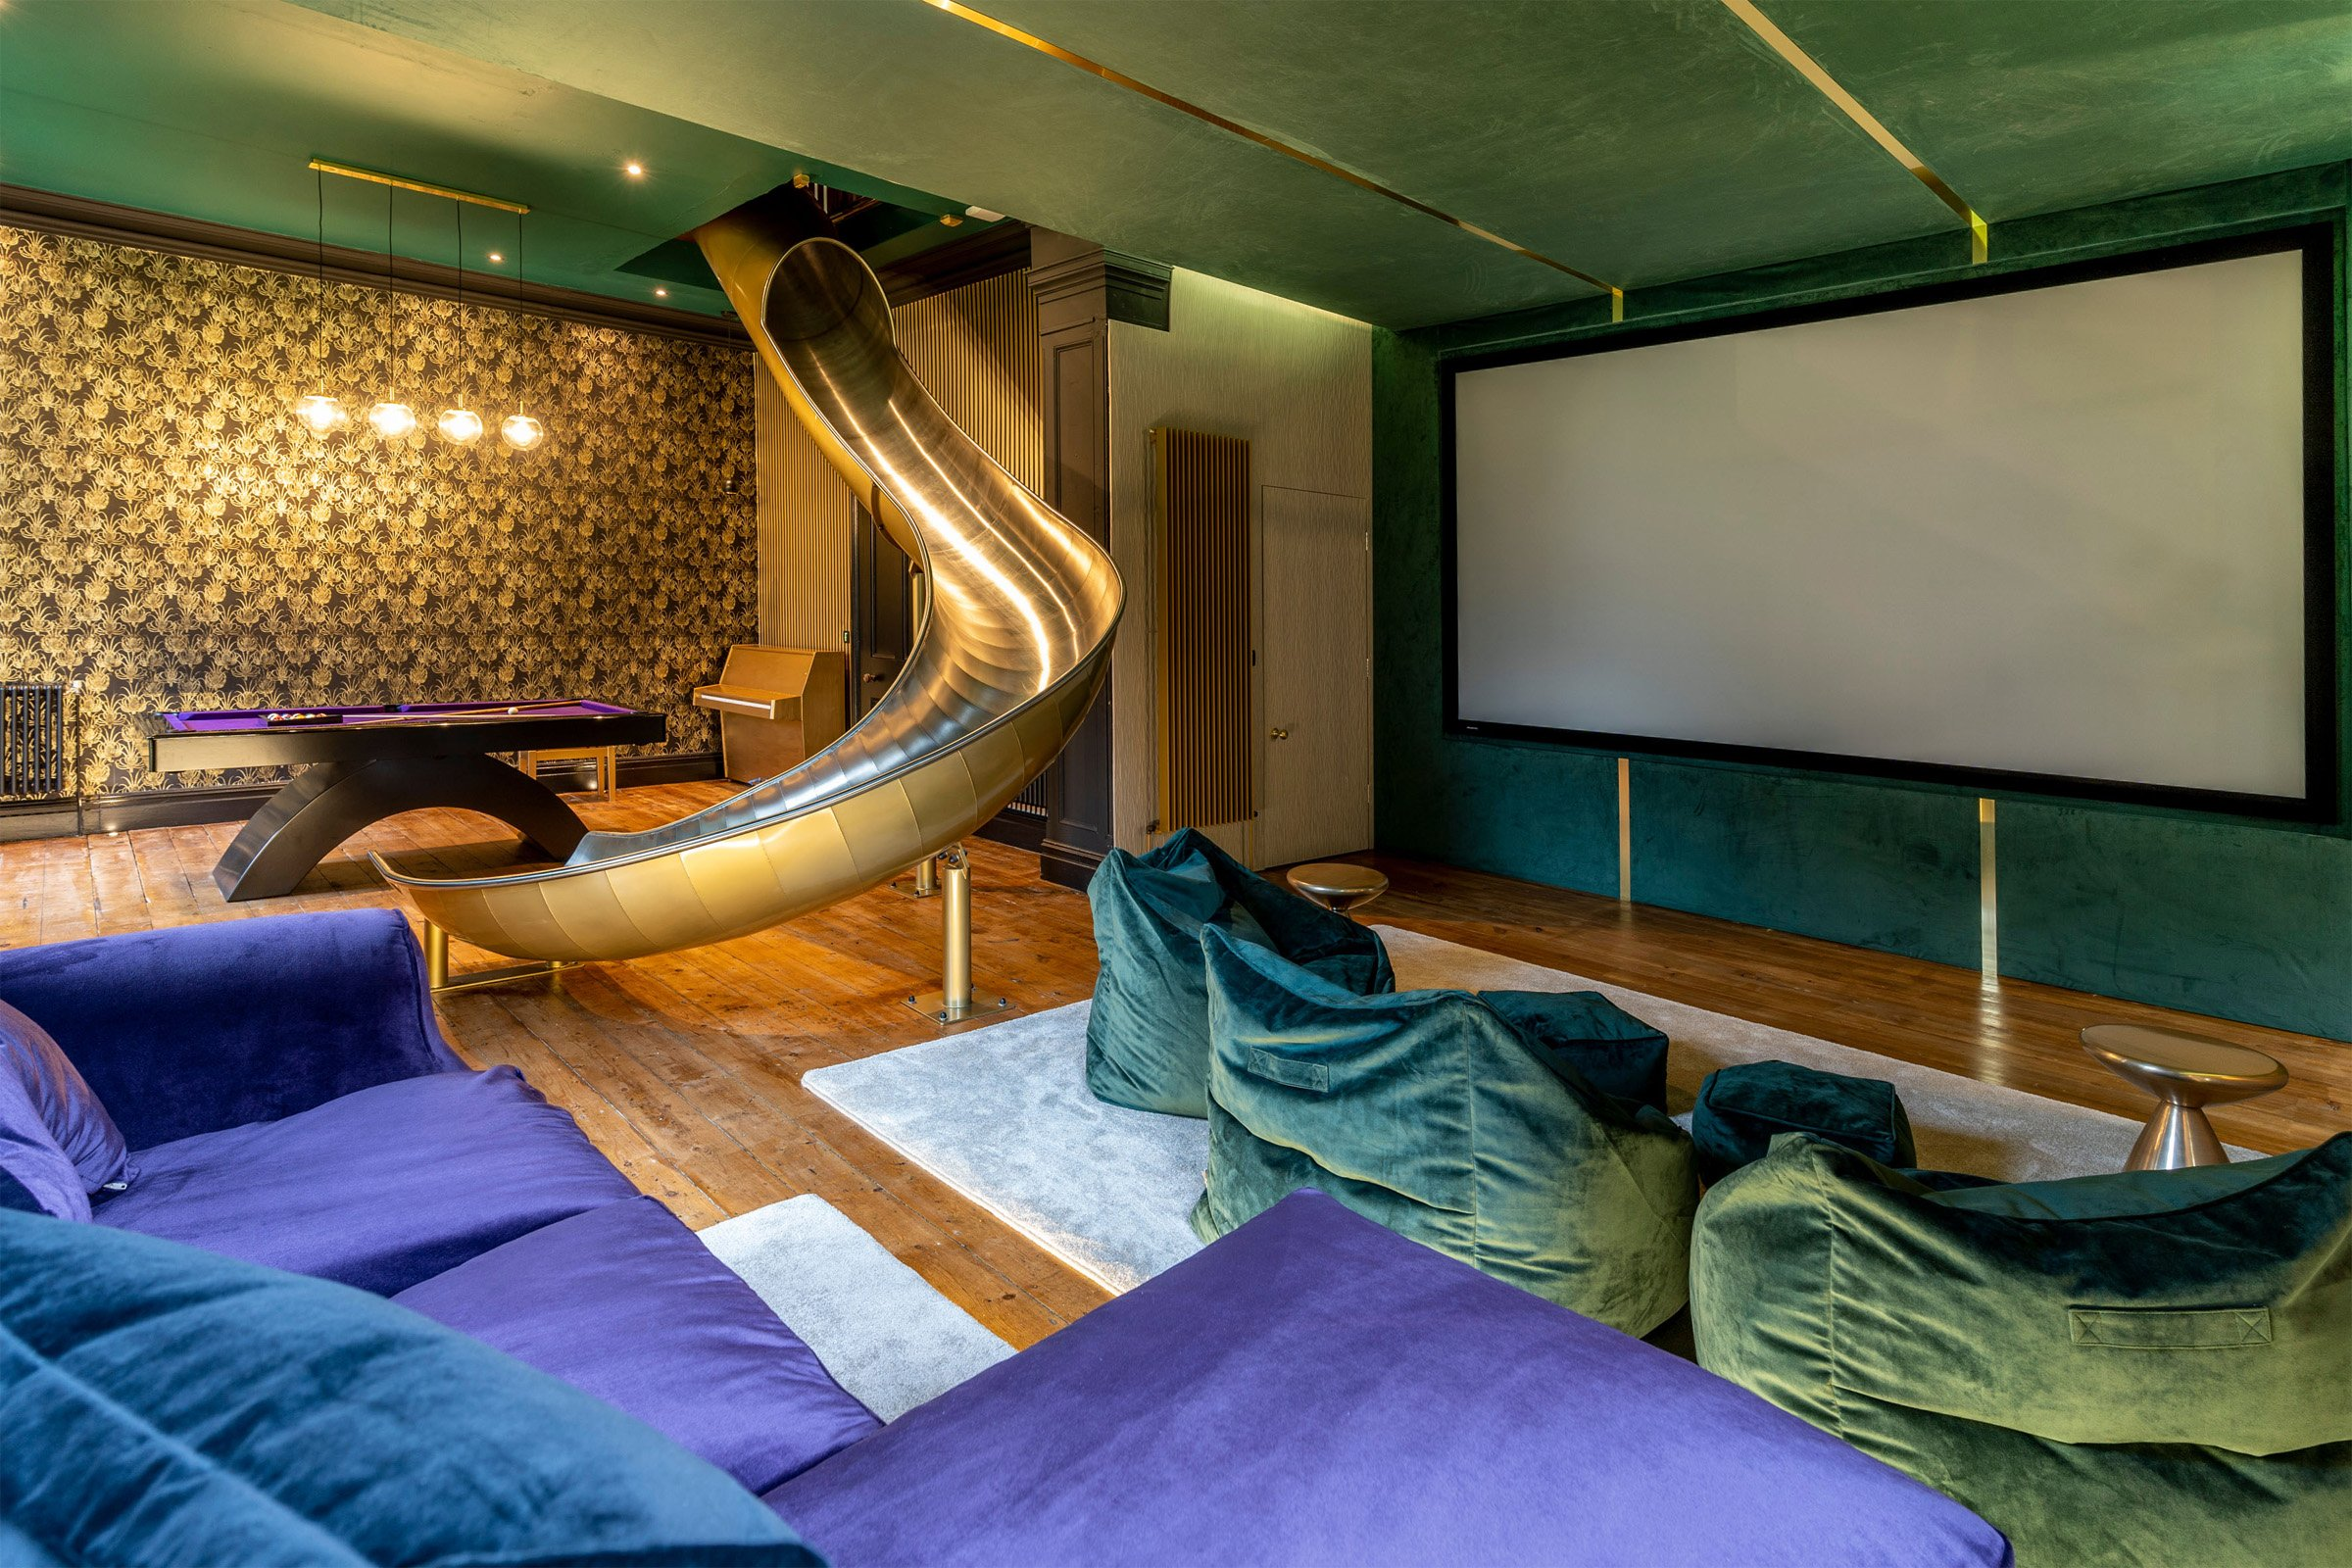 Luxury cinema and entertainment space with Control4 automation